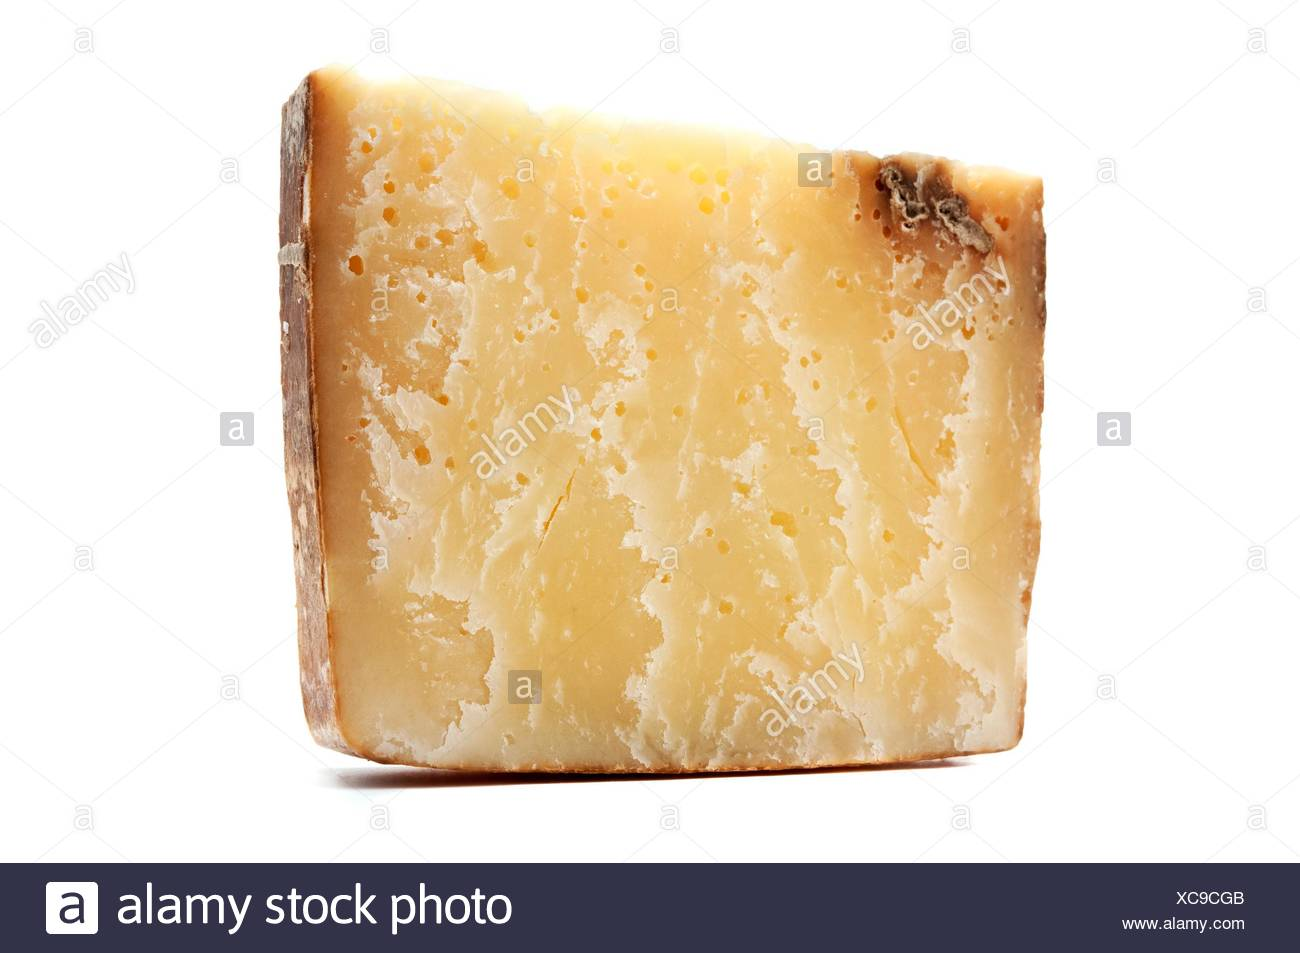 Bagoss cheese on a white background. - Stock Image